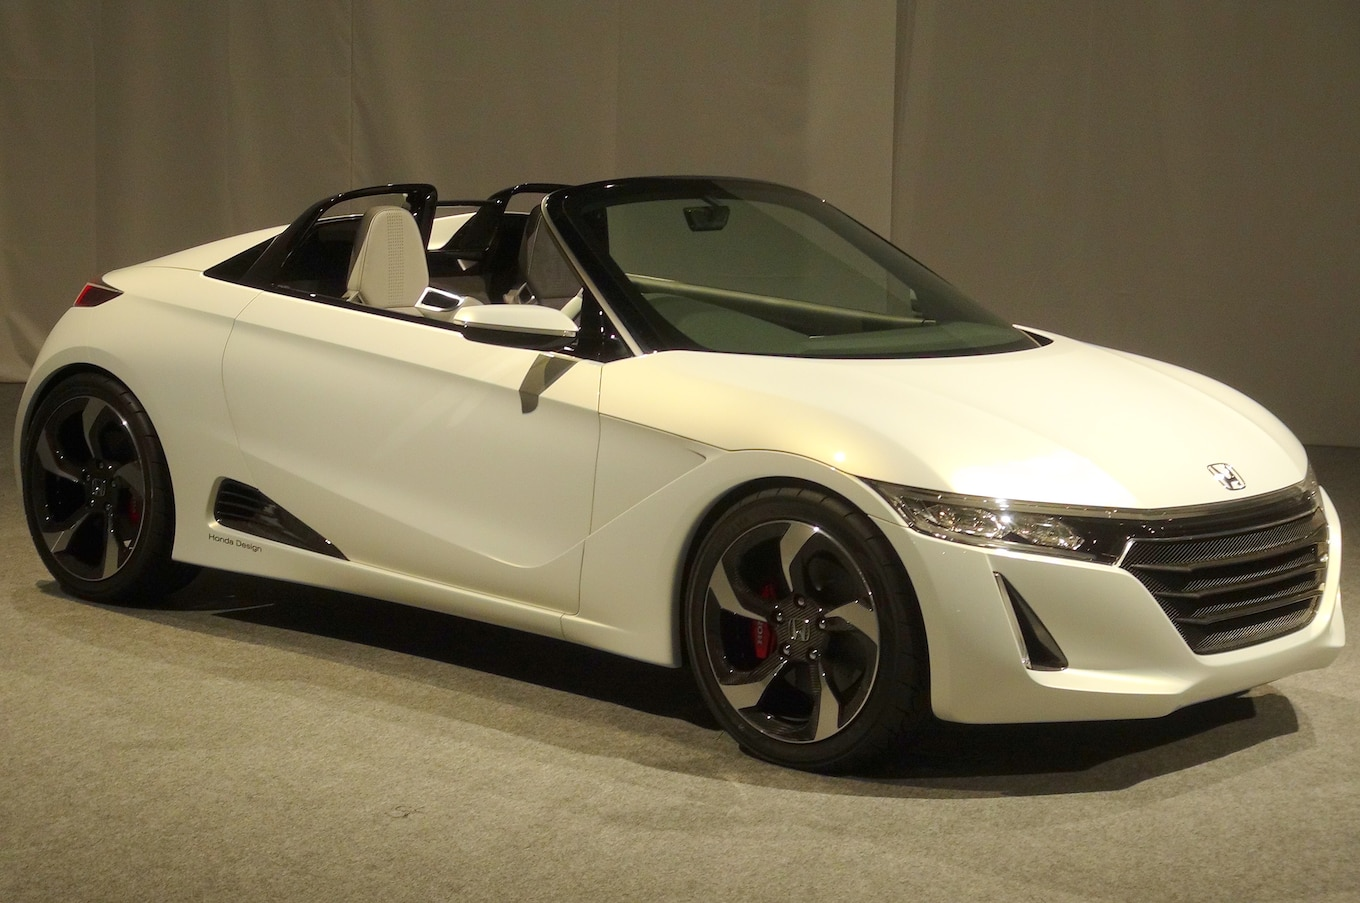 hight resolution of honda s2000 concept honda s660 concept nearly ready for production motor trend